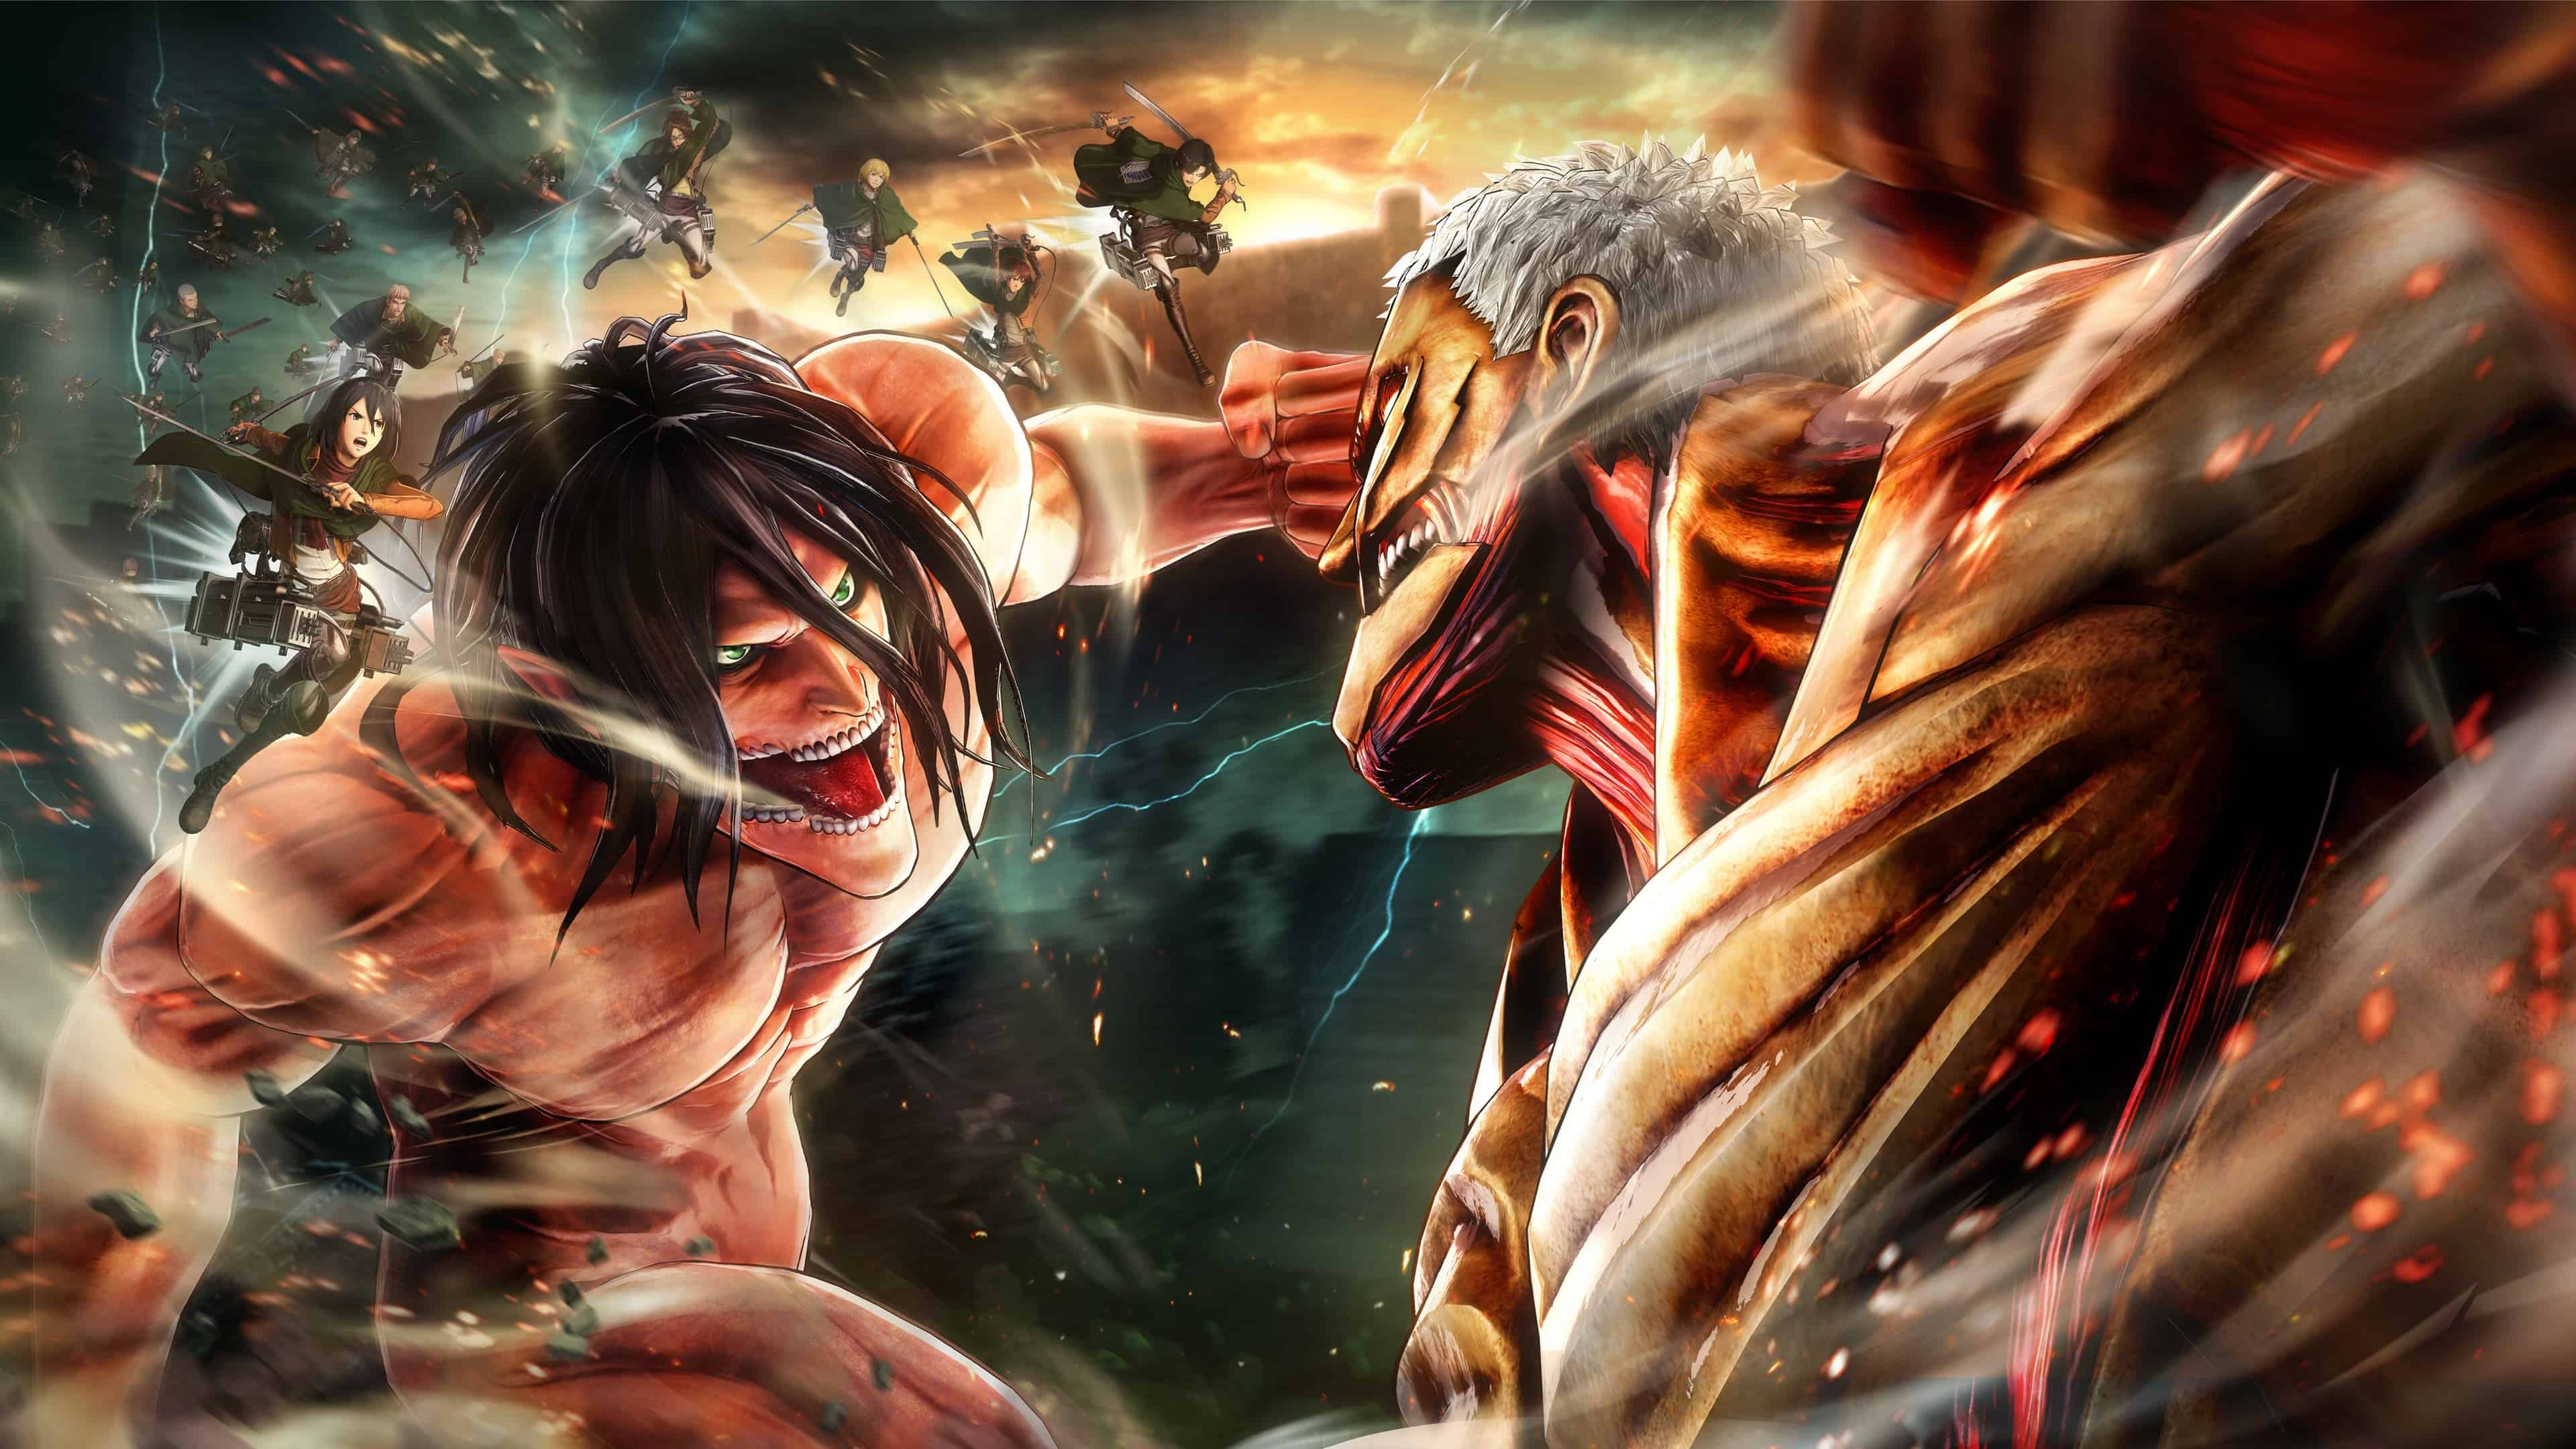 Anime Wallpaper 4k Attack On Titan